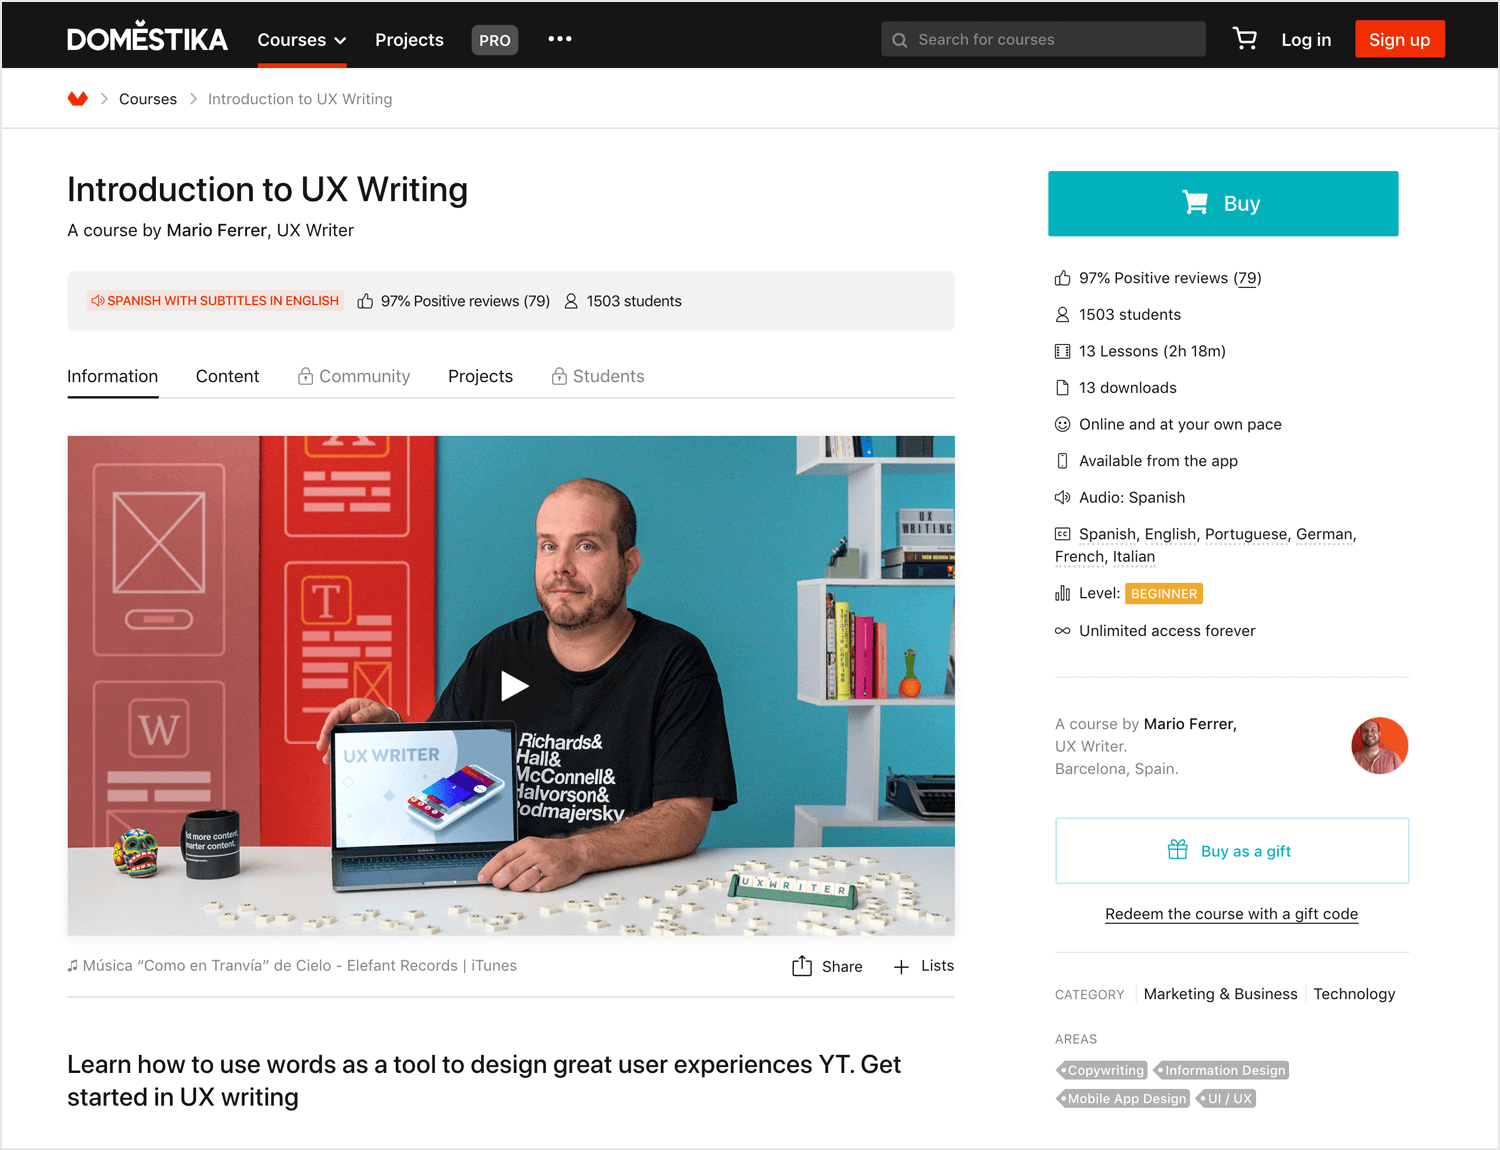 Introduction to UX Writing course